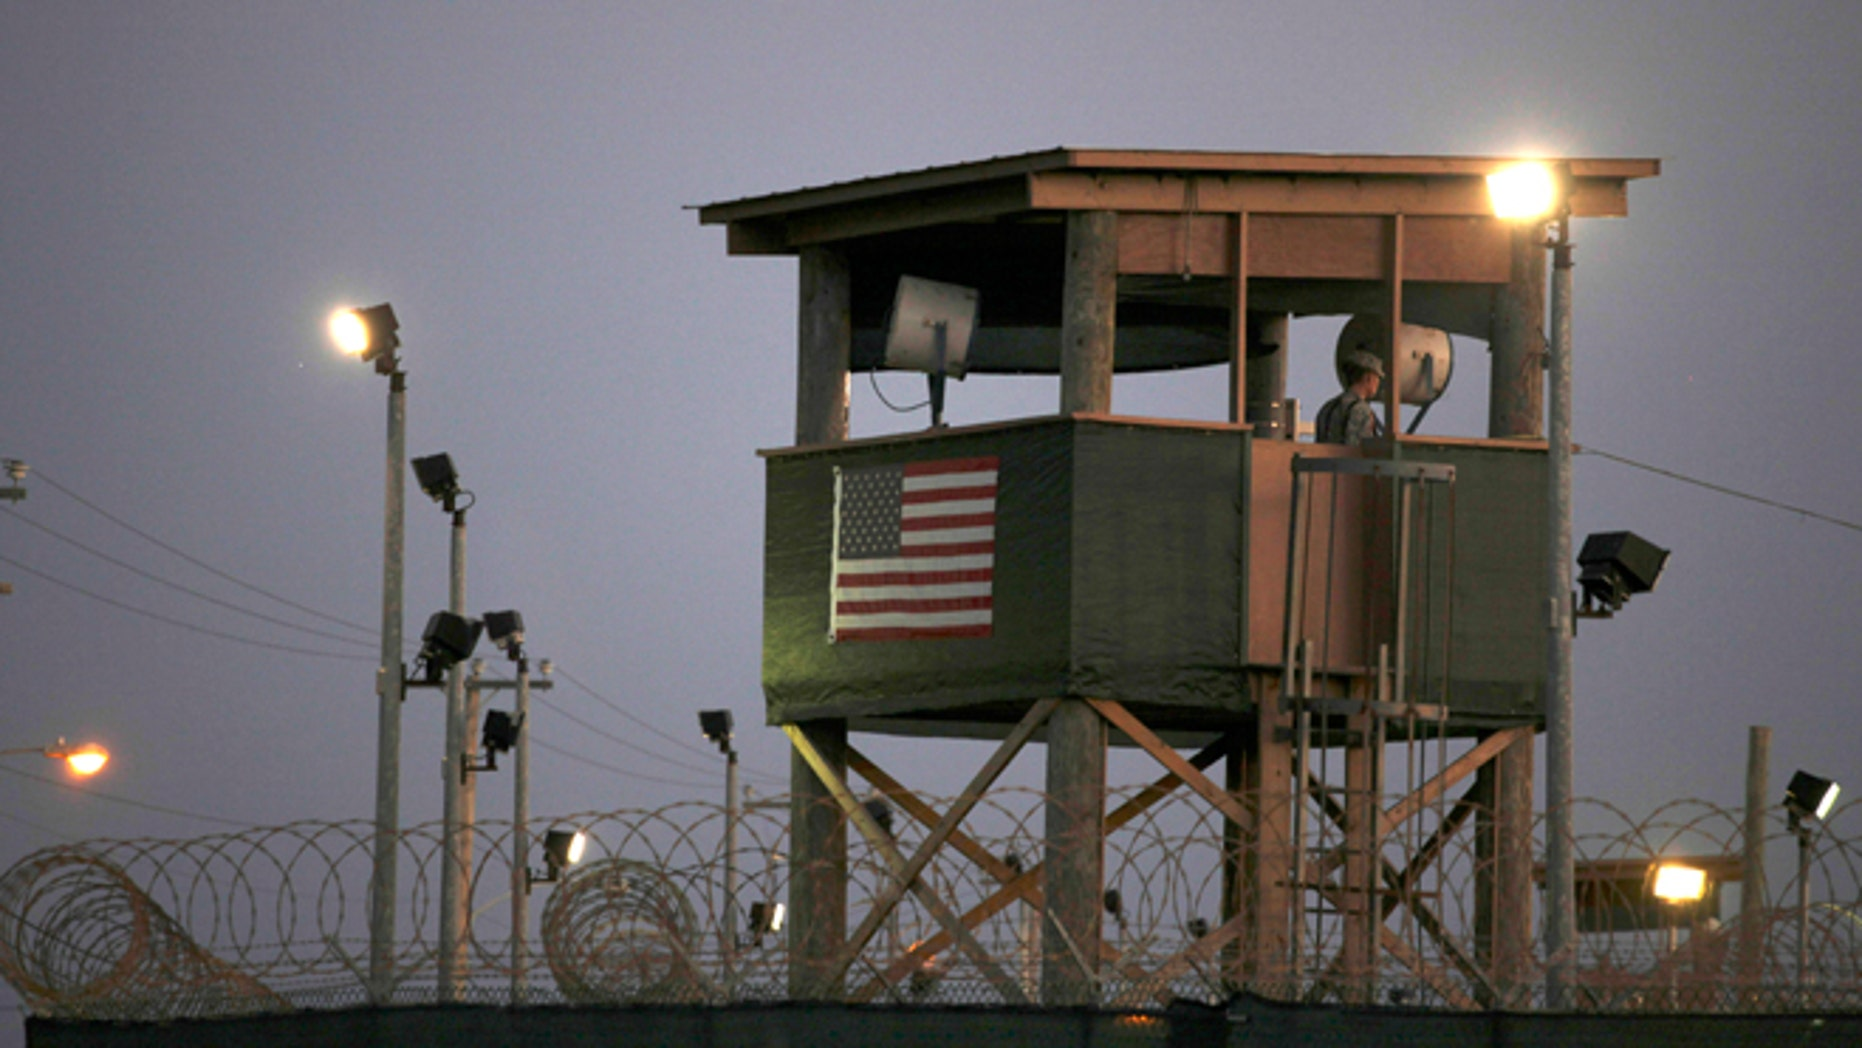 FILE - In this March 29, 2010 photo, reviewed by the U.S. military, a Guantanamo guard keeps watch from a tower overlooking the detention facility at Guantanamo Bay U.S. Naval Base, Cuba. The transfer of prisoners out of Guantanamo Bay has ground to a halt amid a slow Pentagon approval process. Thatâs caused frustration within the administration and raised doubts that President Barack Obama can fulfill his campaign promise to close the U.S. prison Cuba for terrorism suspects. (AP Photo/Brennan Linsley, File)